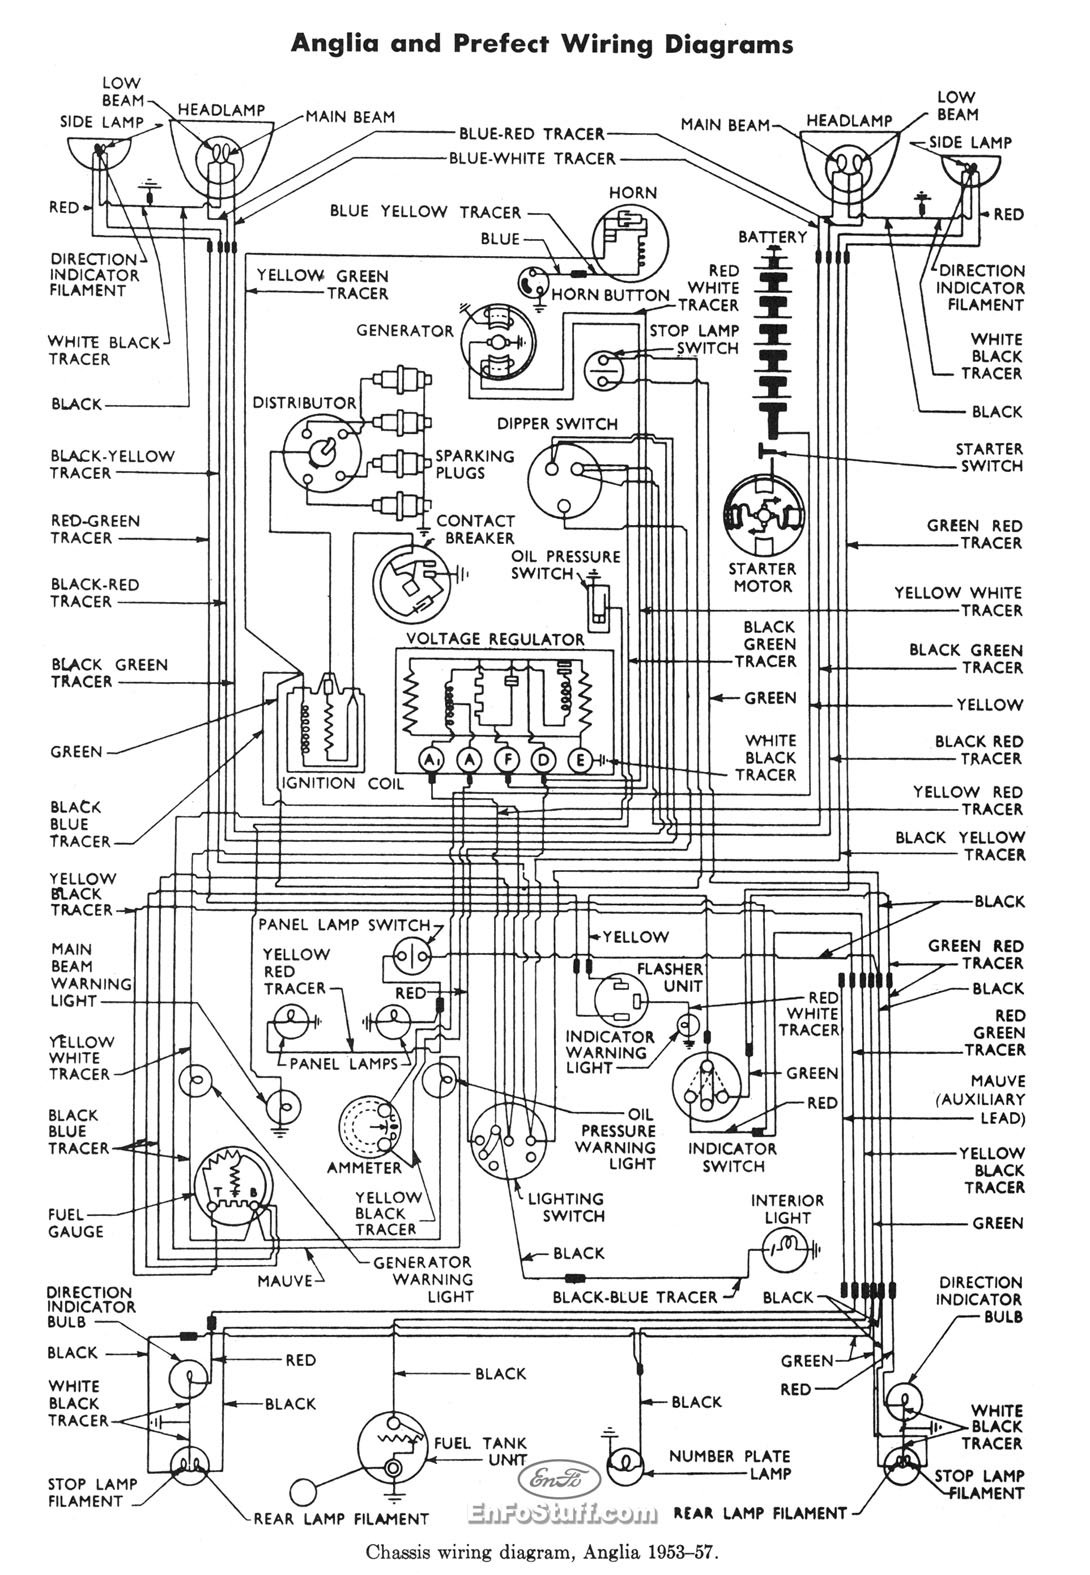 wiring diagram for ford anglia 1953 57 1926 Ford Wiring Diagram